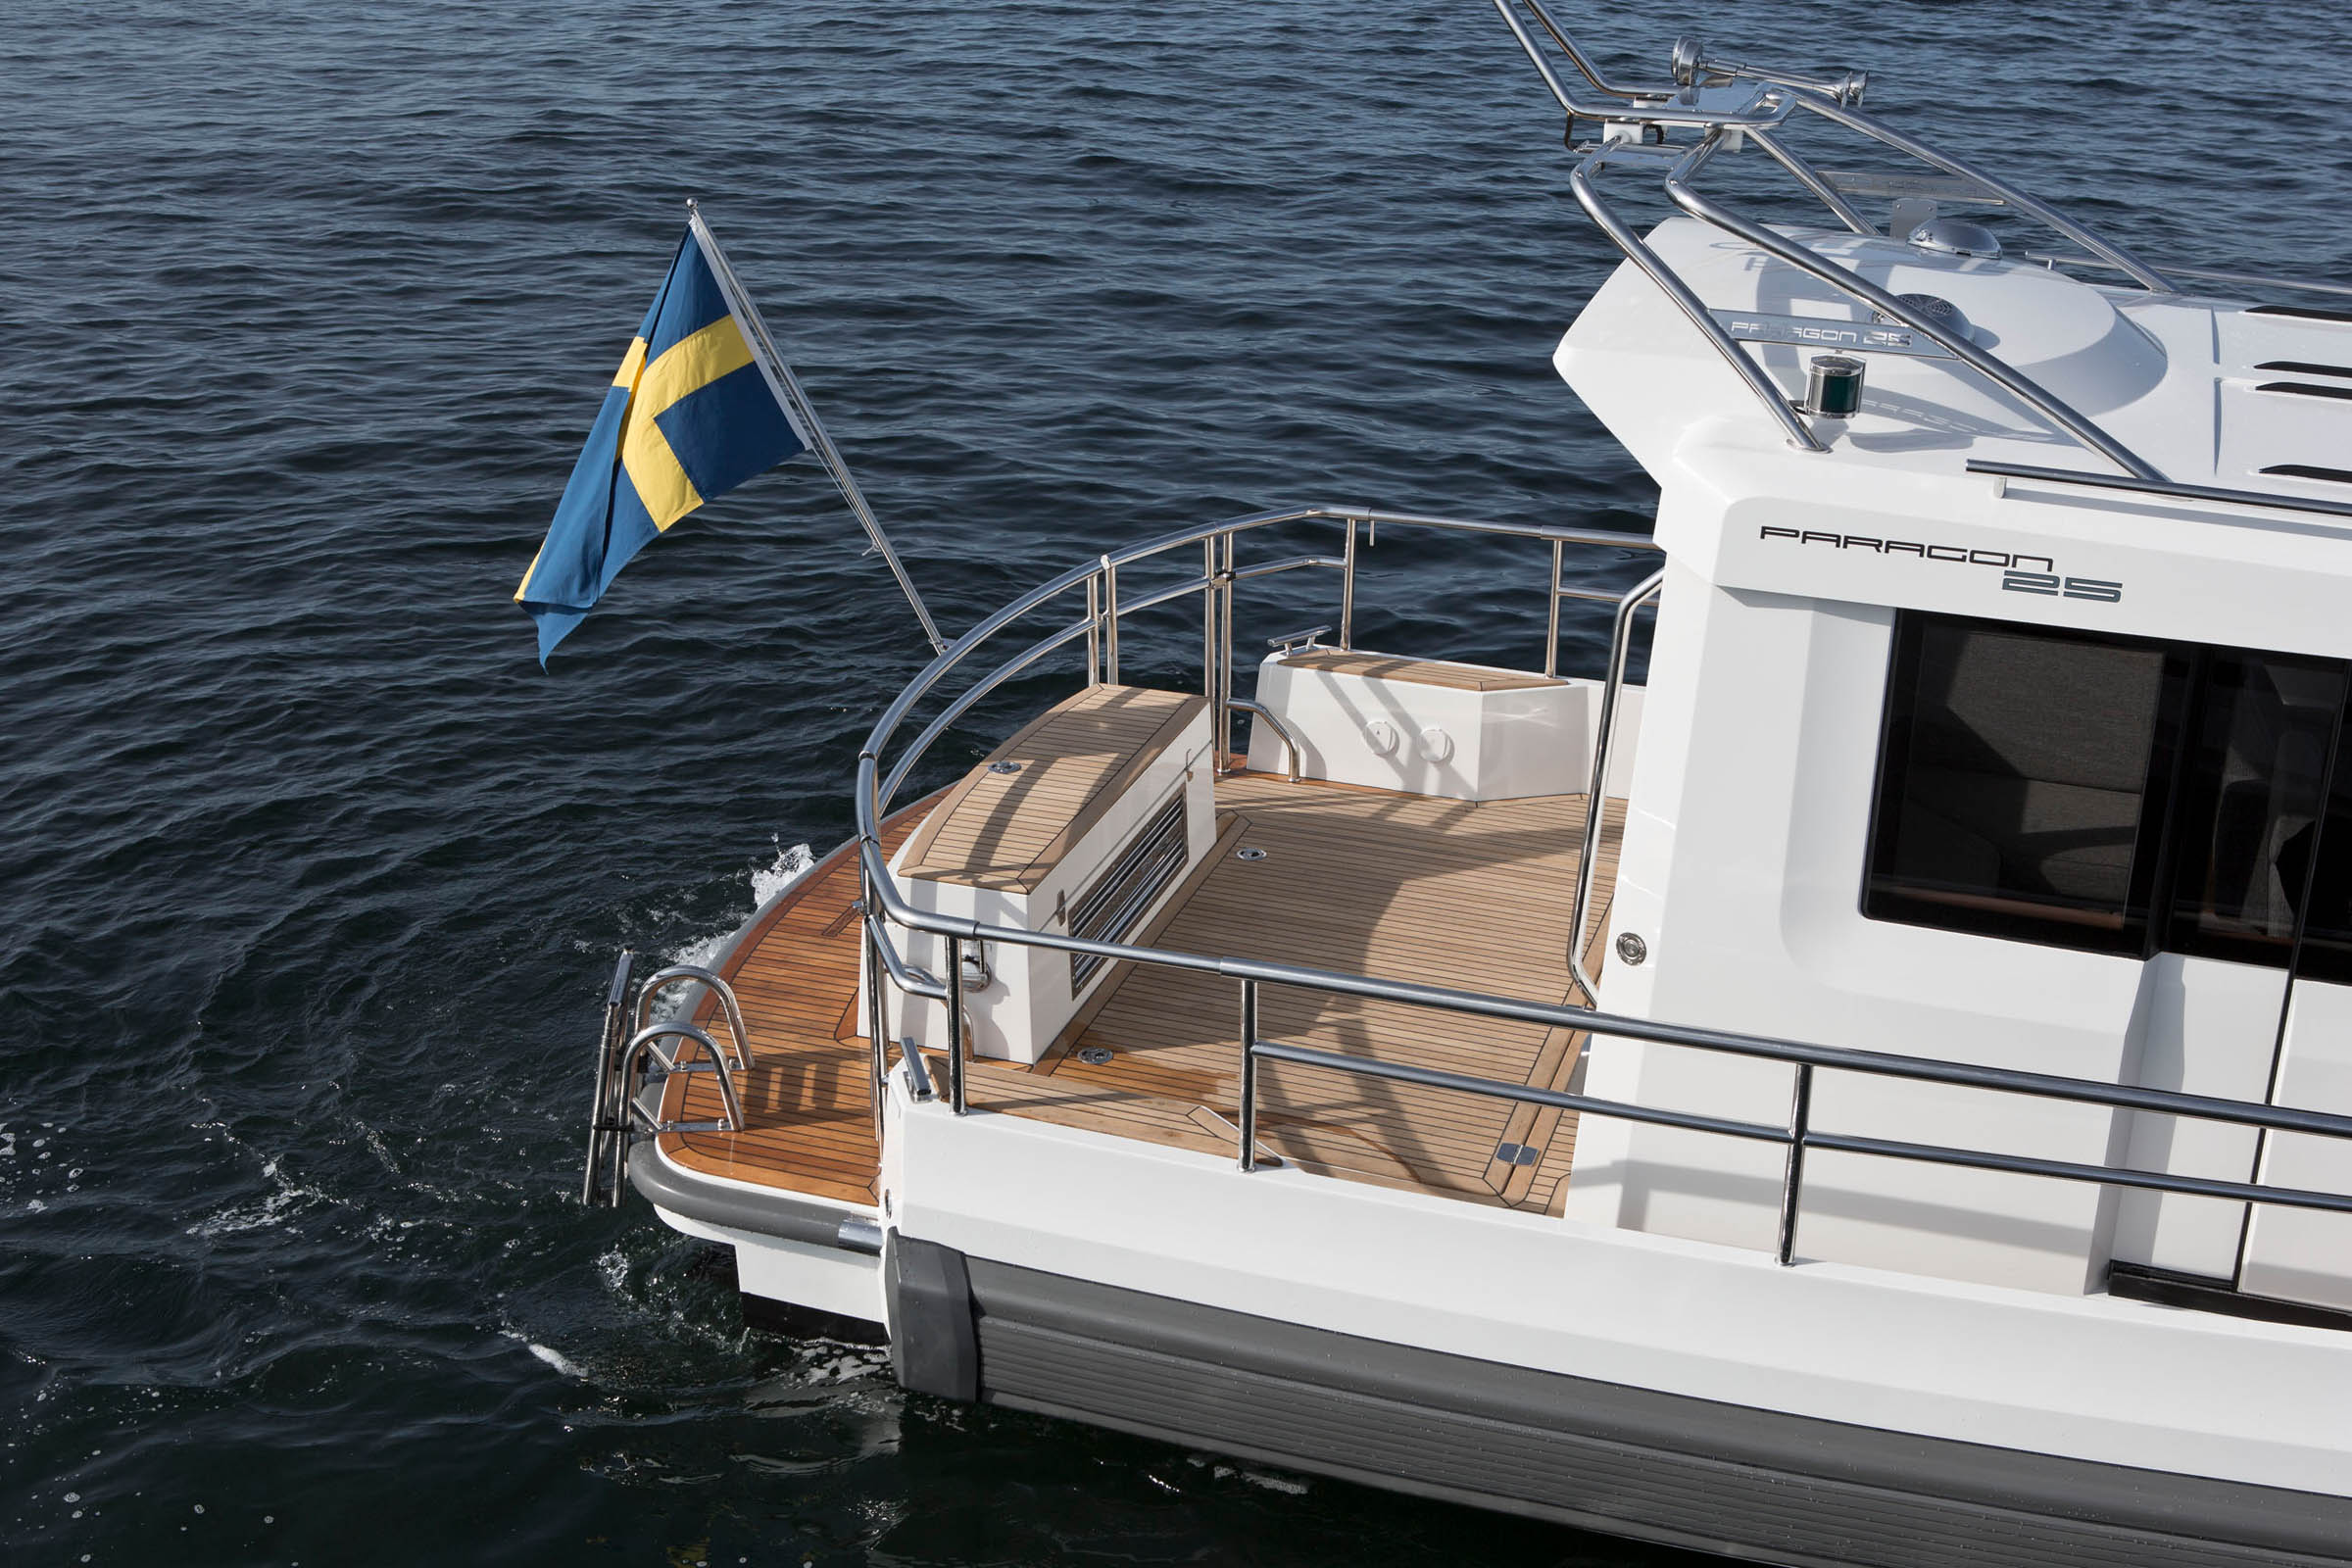 Paragon 25 motorboat from above with a swedish flag